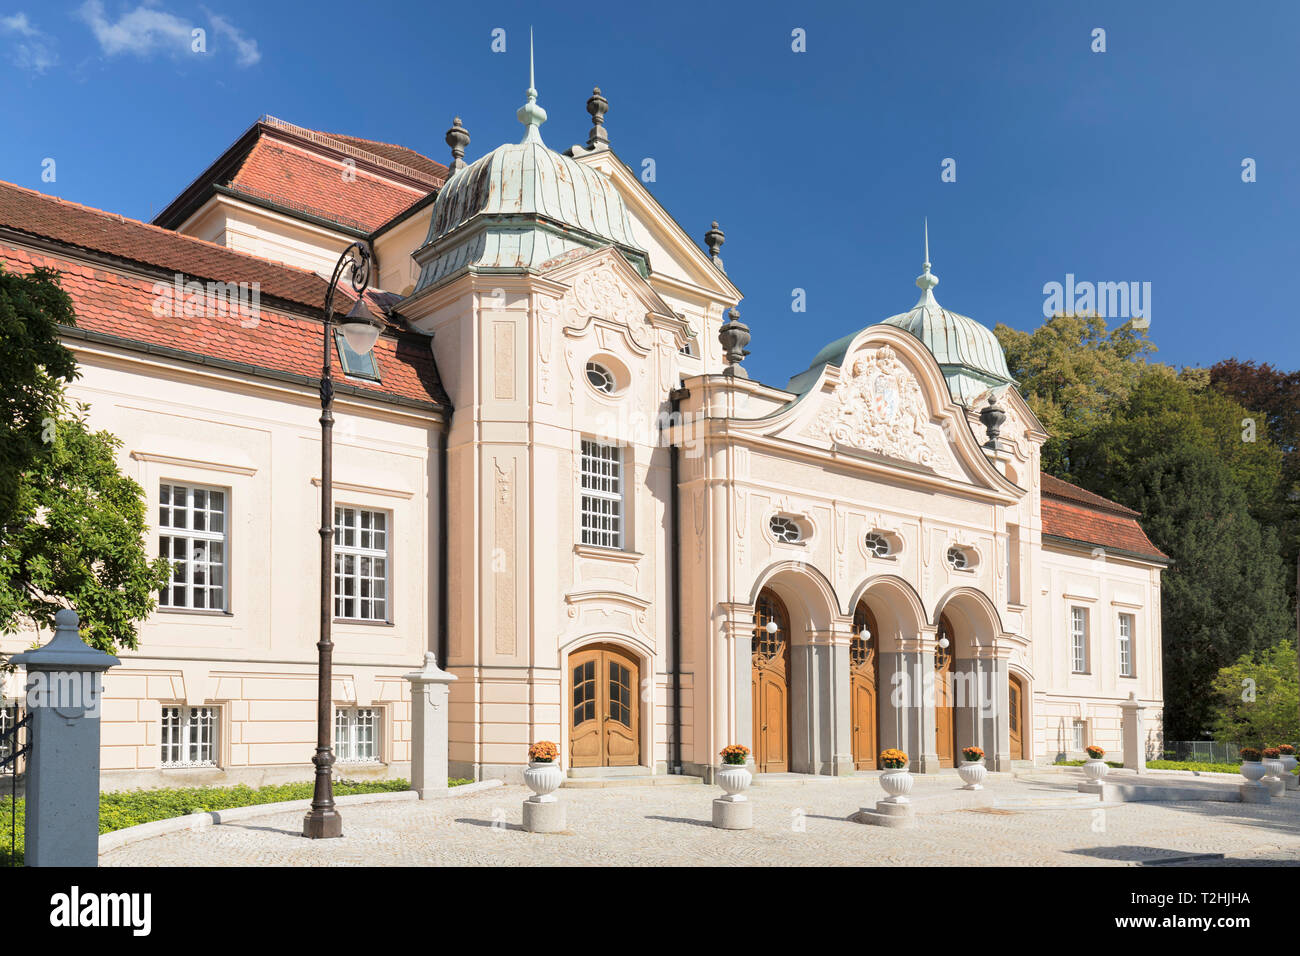 Konigliches Kurhaus (Royal Spa House), Bad Reichenhall, Bayern, Oberbayern, Germany, Europe - Stock Image